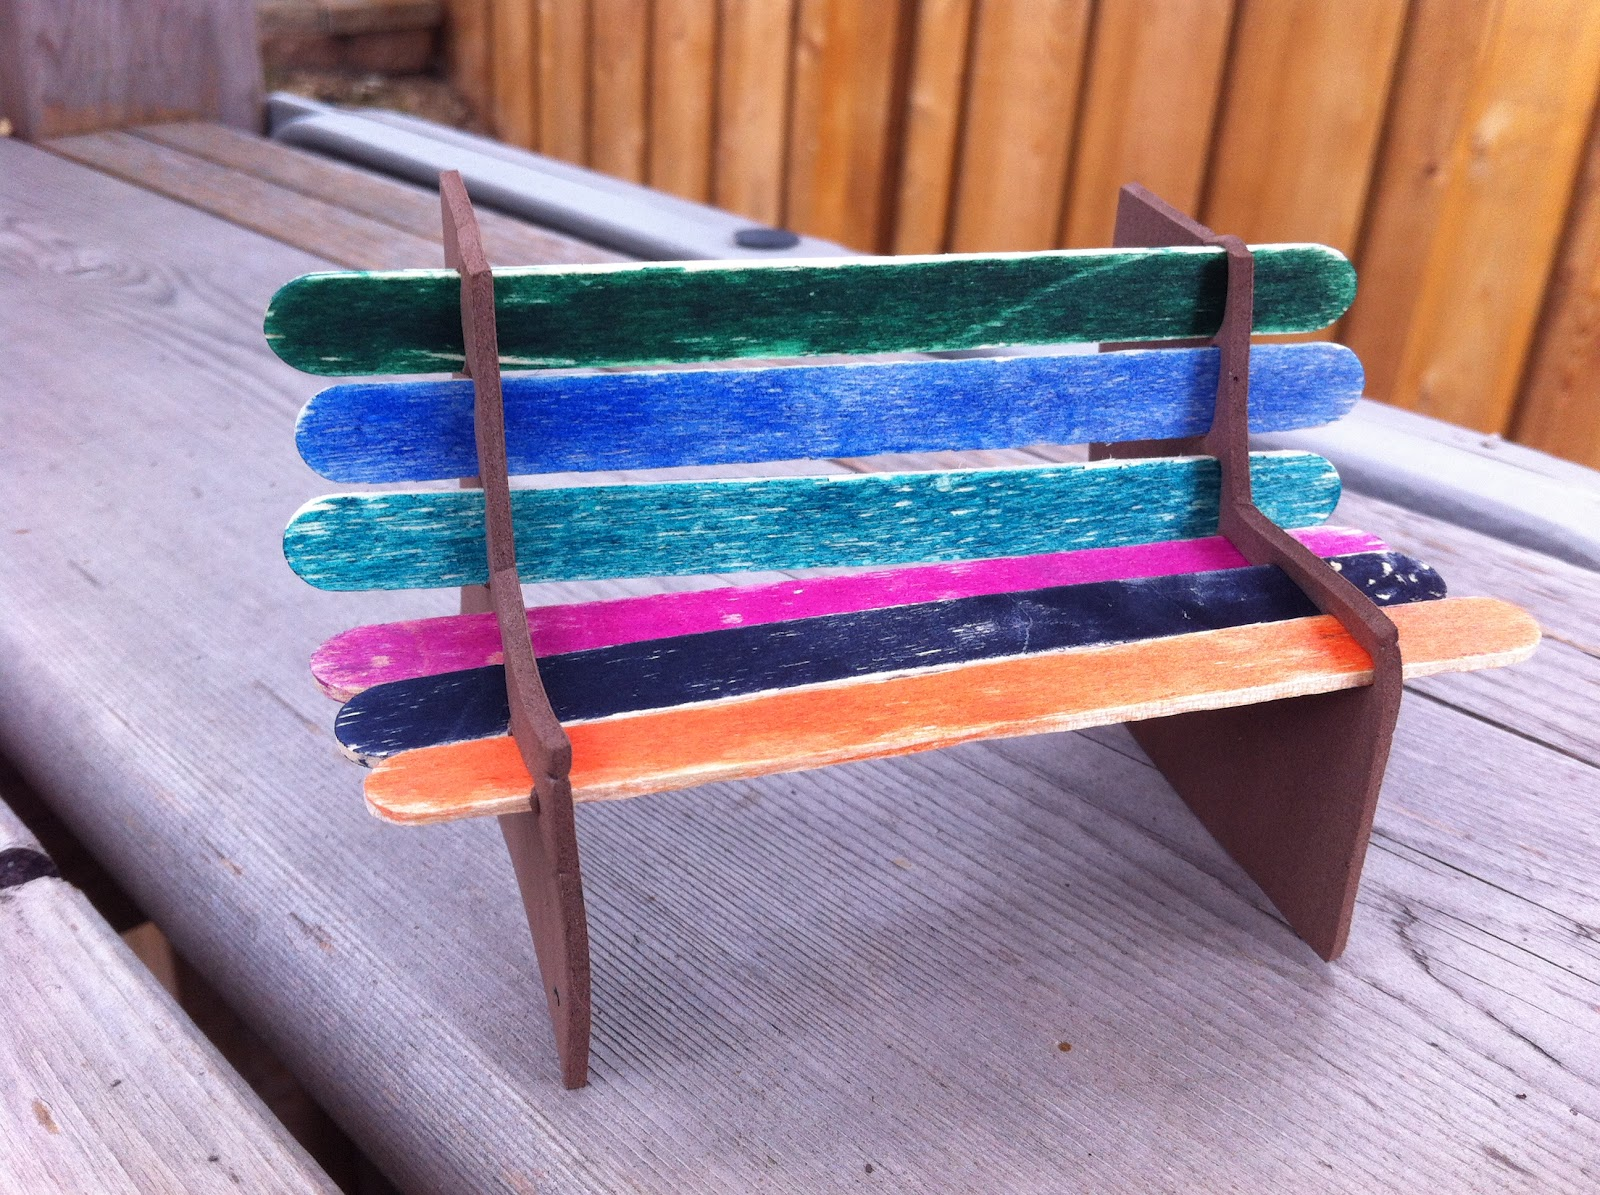 Fun Craft Idea How To Make A Popsicle Stick Park Bench: what to make out of popsicle sticks